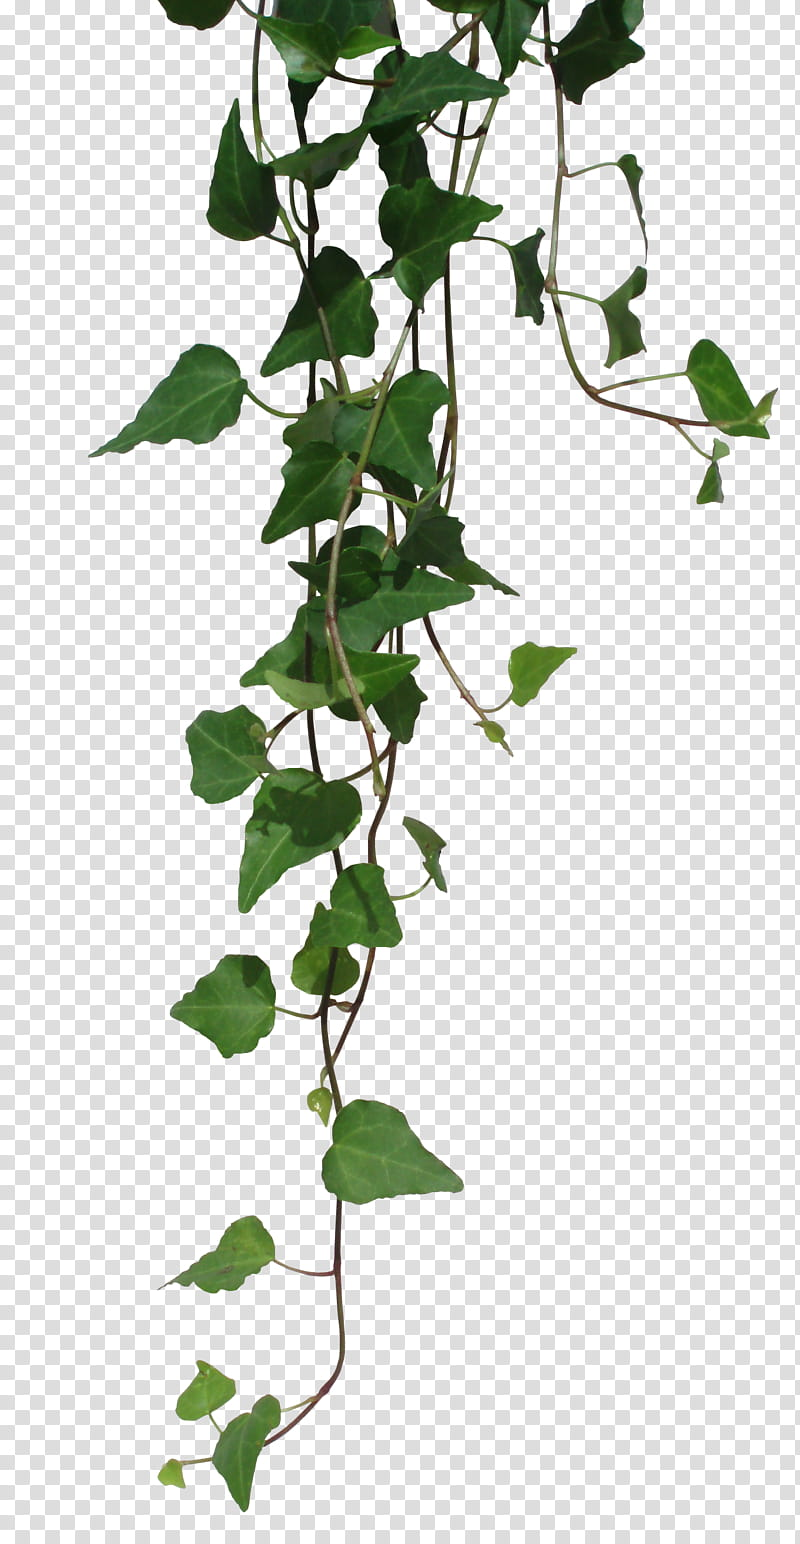 RNDOM, green vines transparent background PNG clipart.